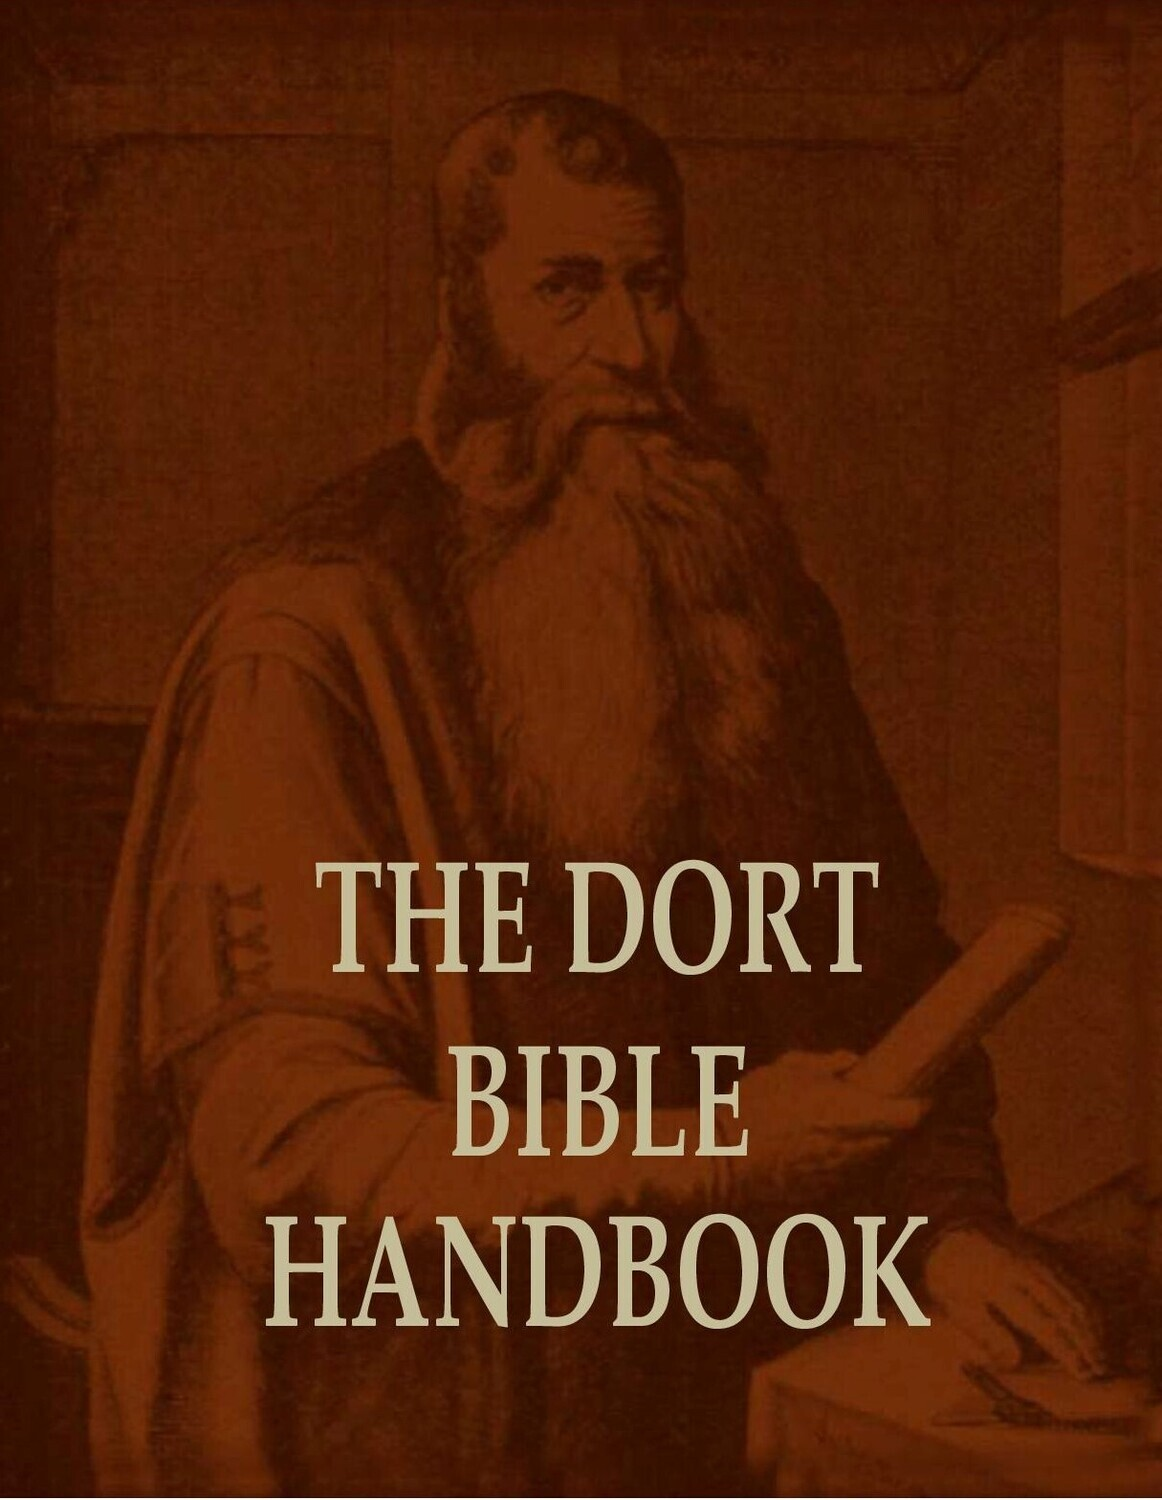 The Dort Bible Handbook: A Wide-Margin Workbook for  Rightly Dividing the Word of Truth